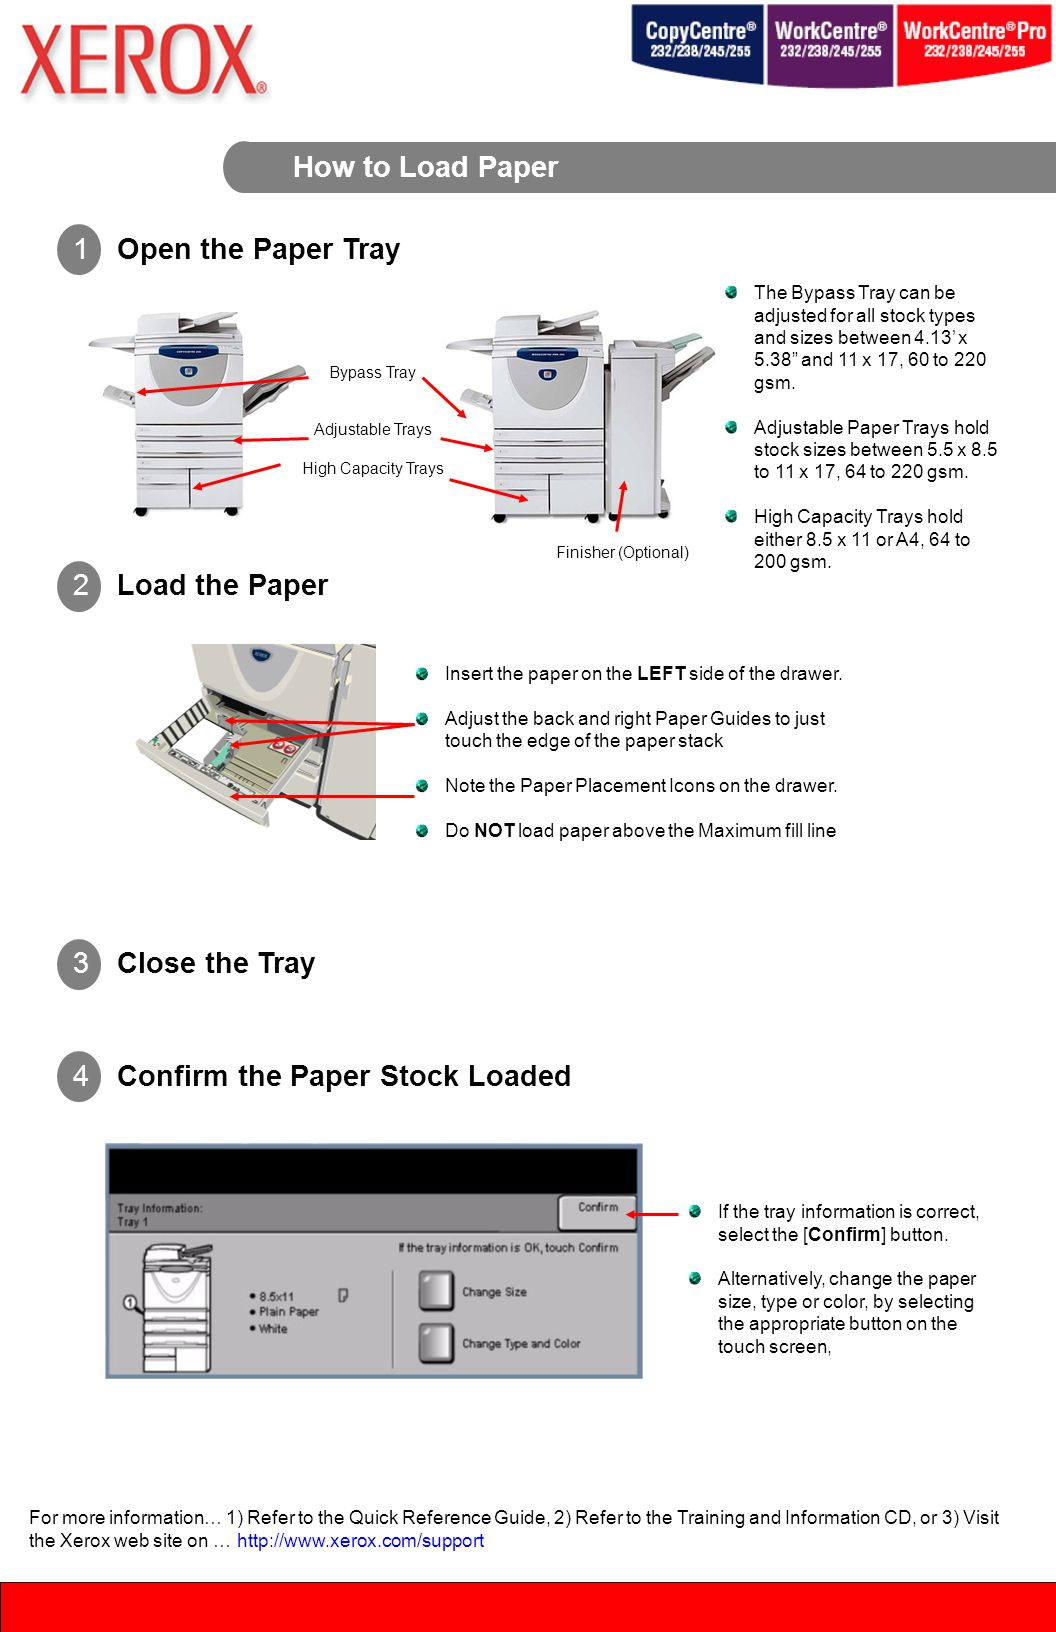 How to Load Paper Finisher (Optional) Bypass Tray Adjustable Trays High Capacity Trays The Bypass Tray can be adjusted for all stock types and sizes between 4.13' x 5.38 and 11 x 17, 60 to 220 gsm.